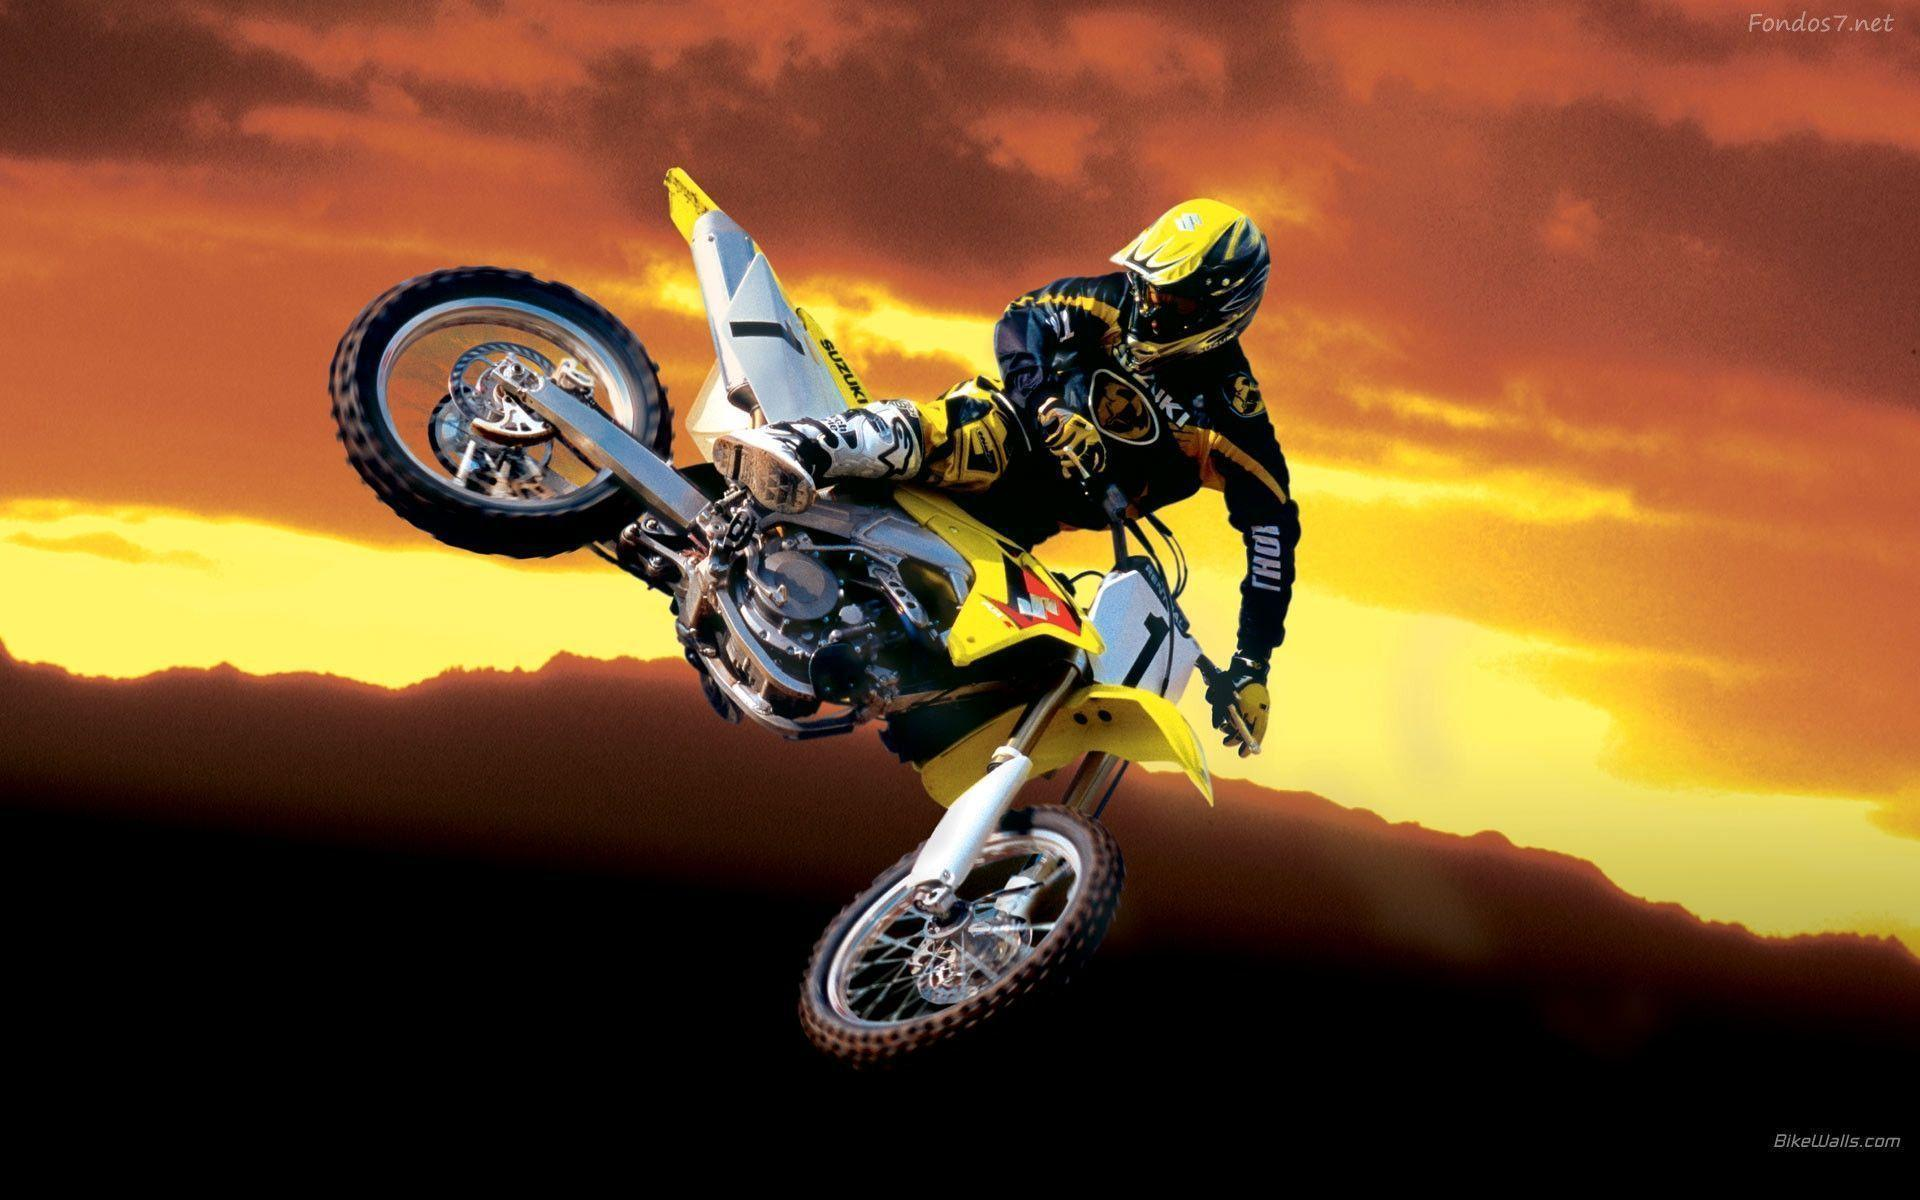 wallpapers hd motos - photo #31